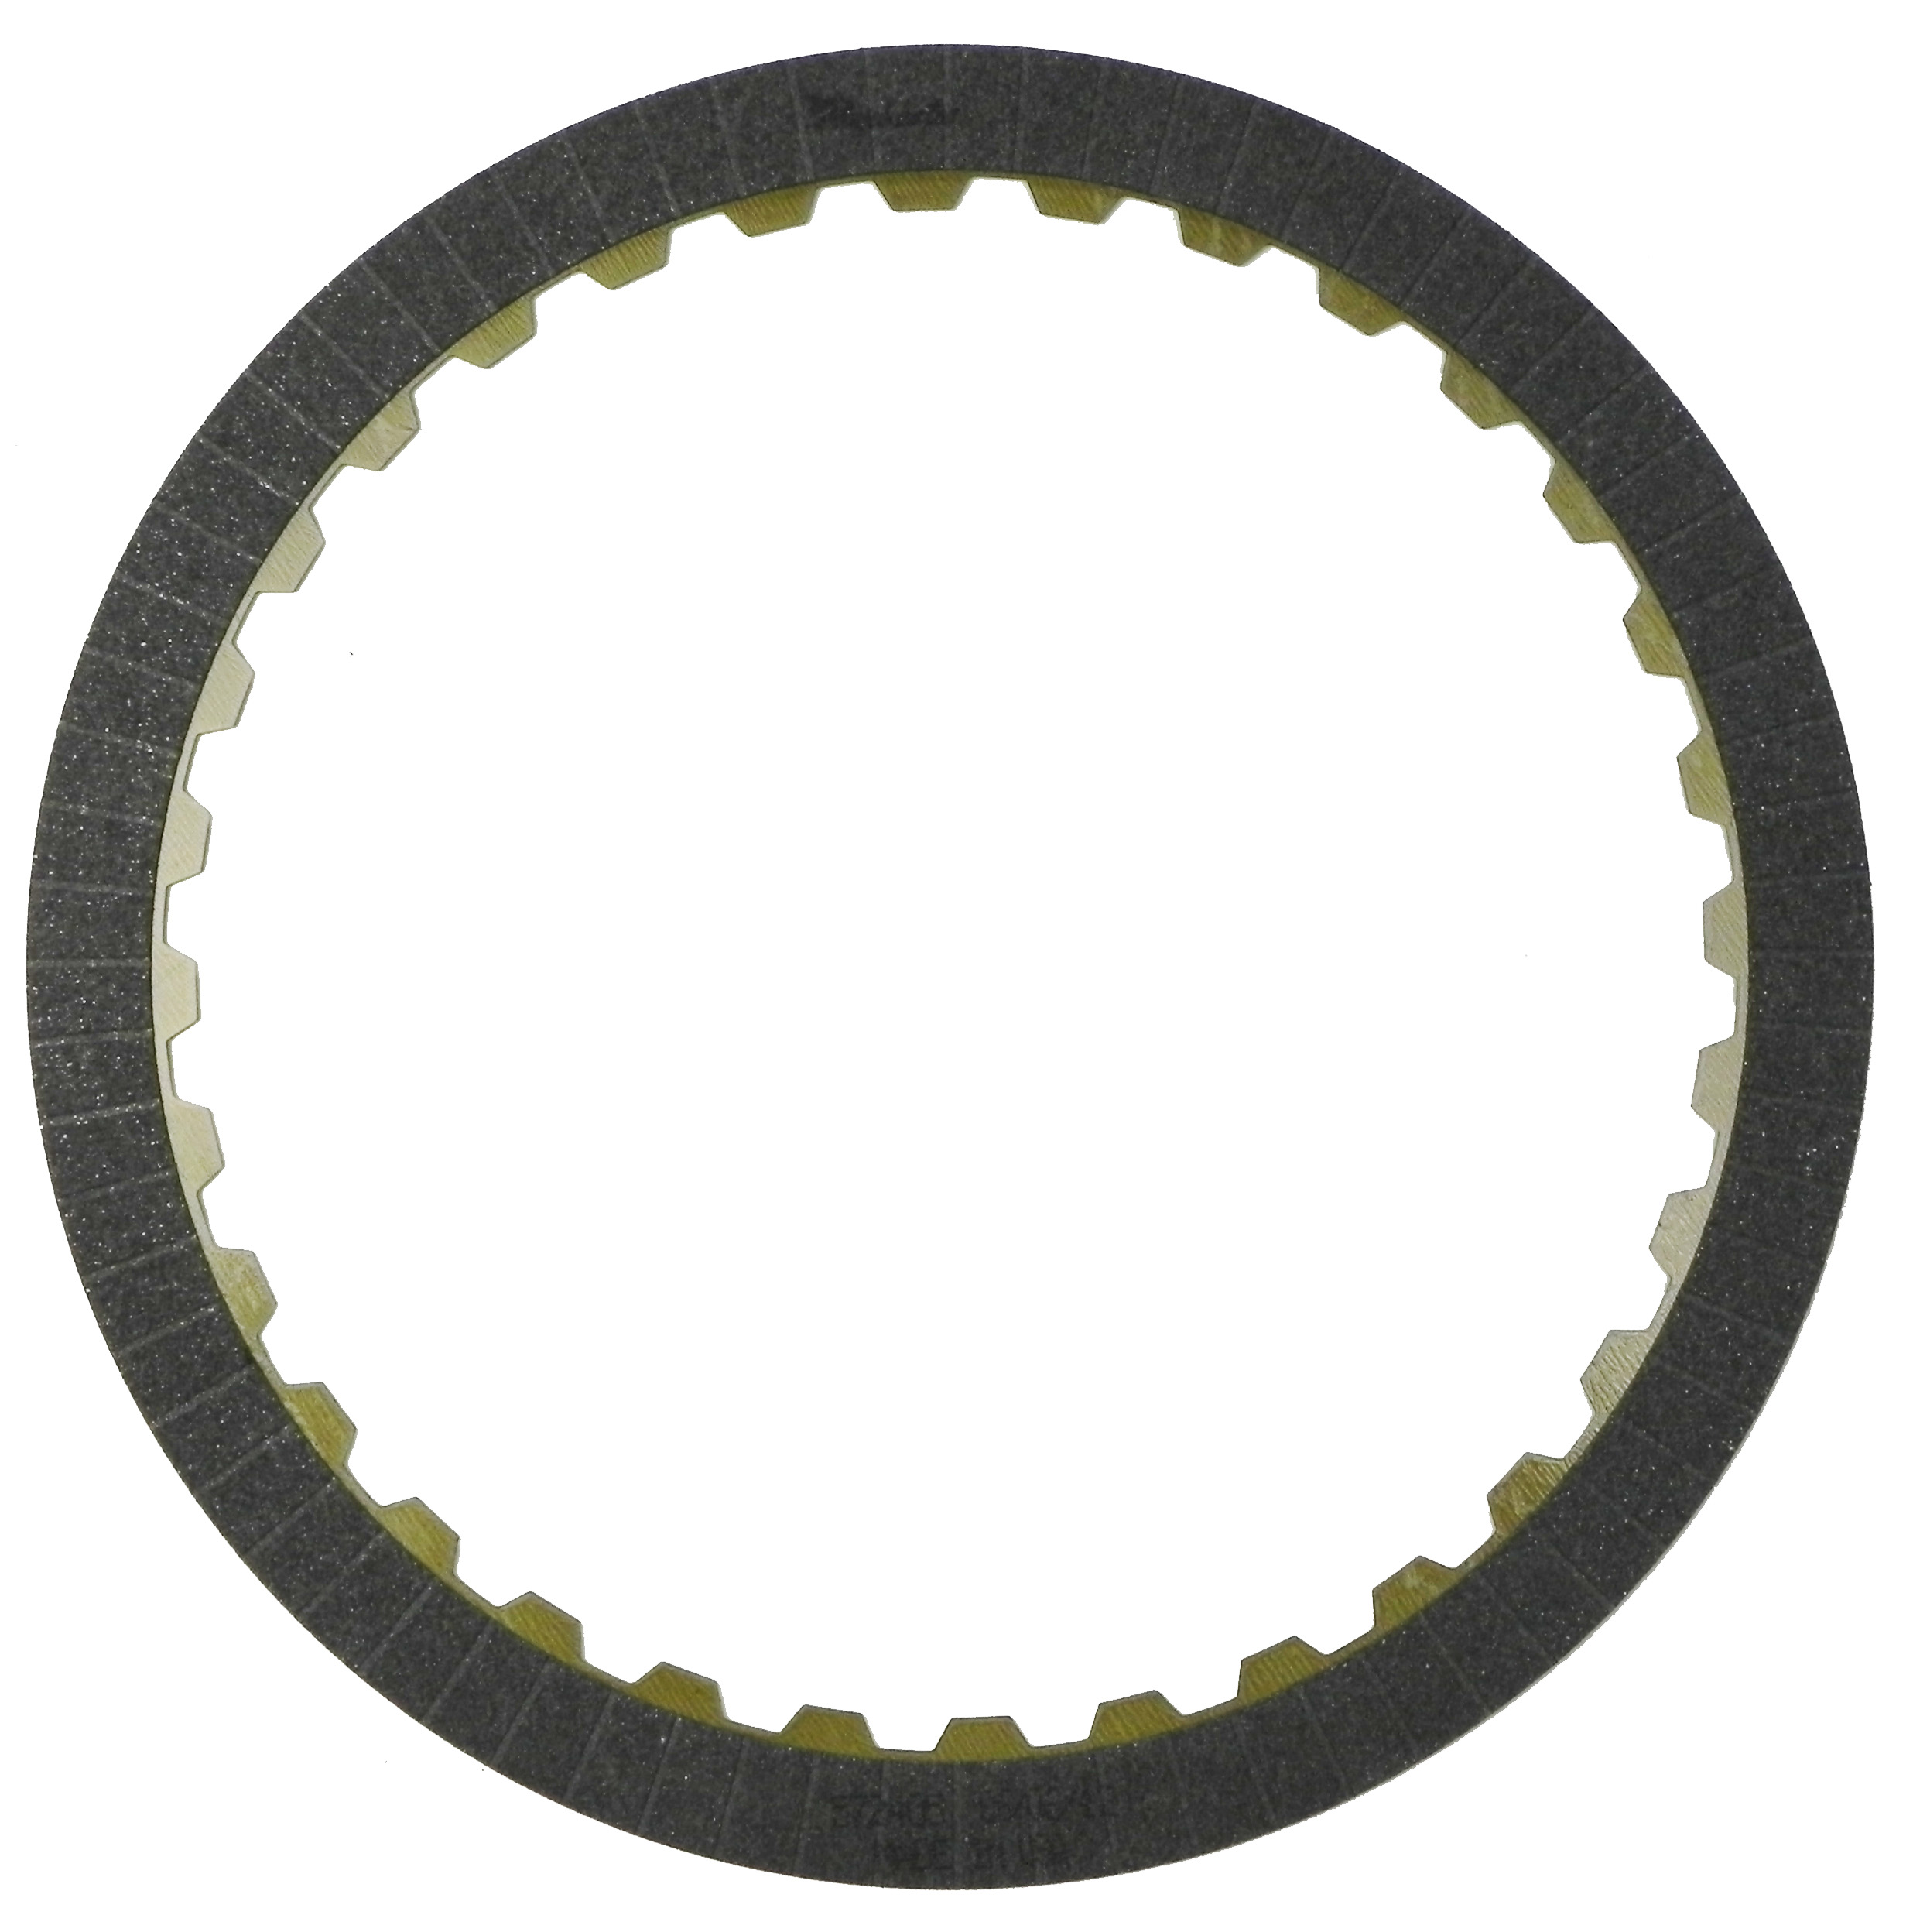 R572405 | 2011-ON Friction Clutch Plate High Energy Direct, Intermediate Clutch High Energy